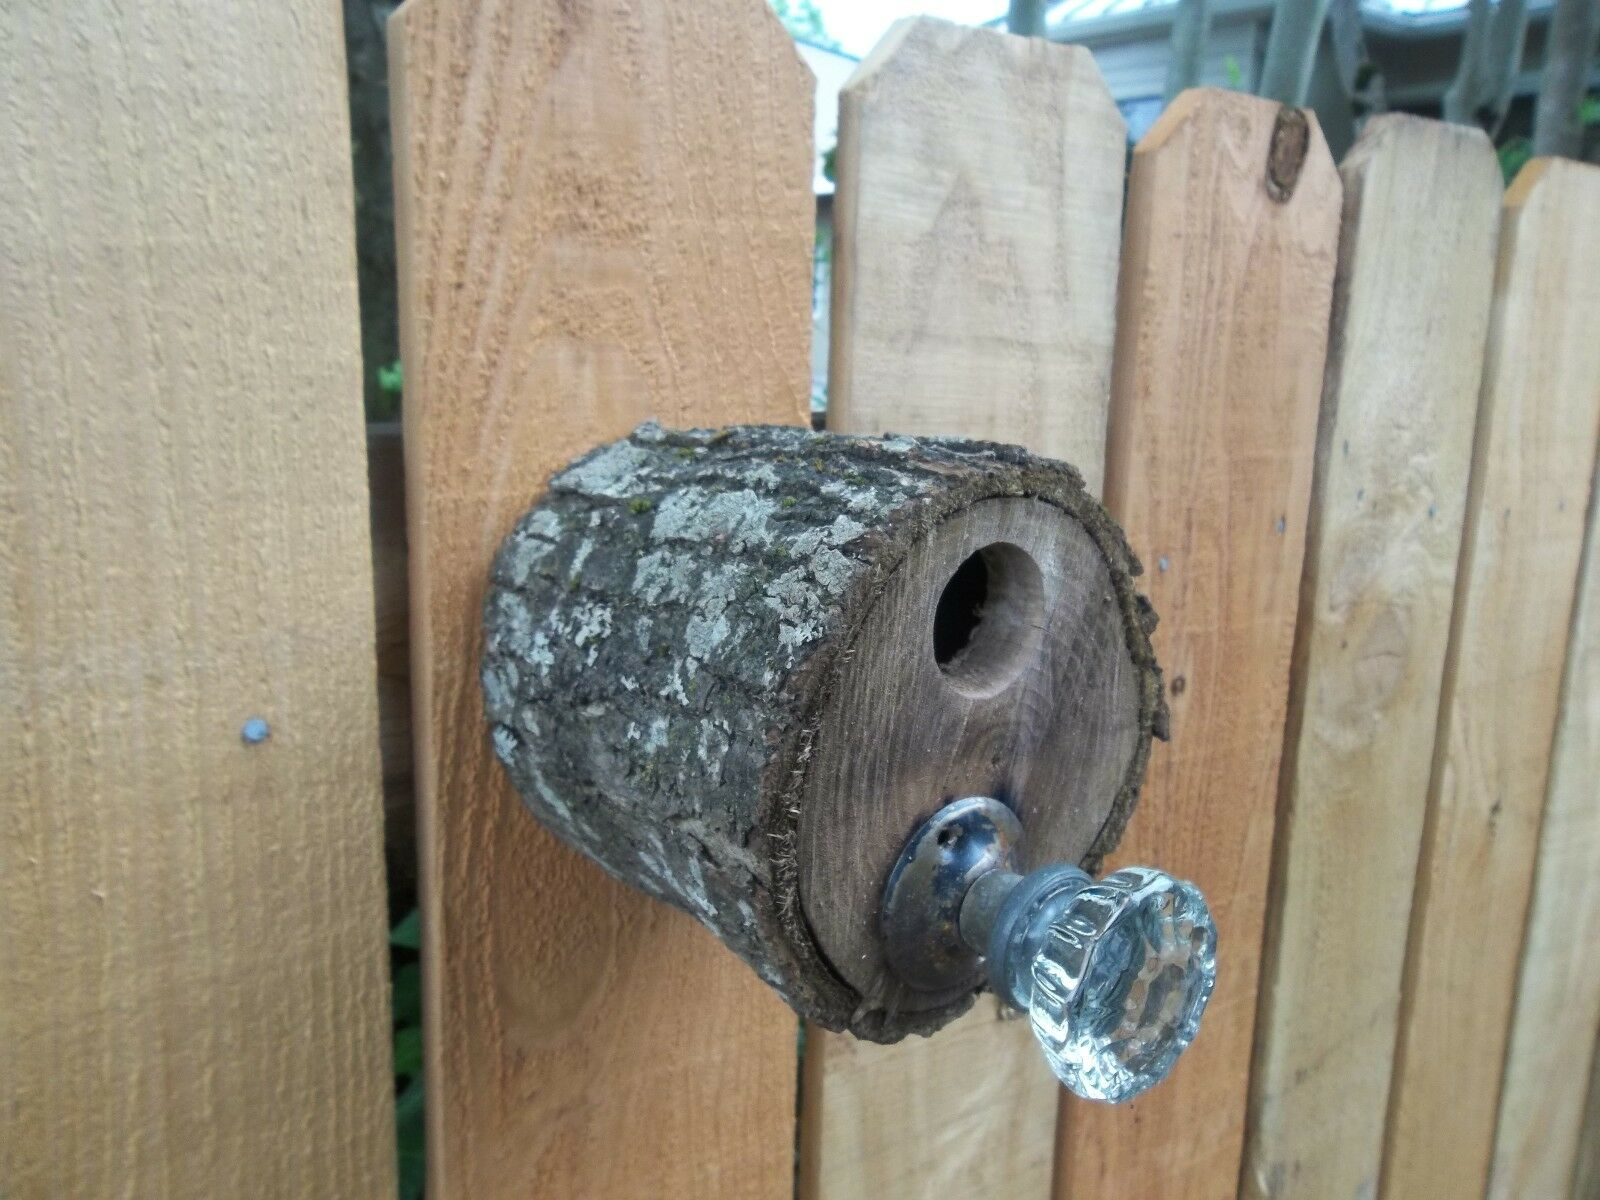 New Hand Made Rustic Black Walnut Wood Bird House with Antique Crystal Doorknob